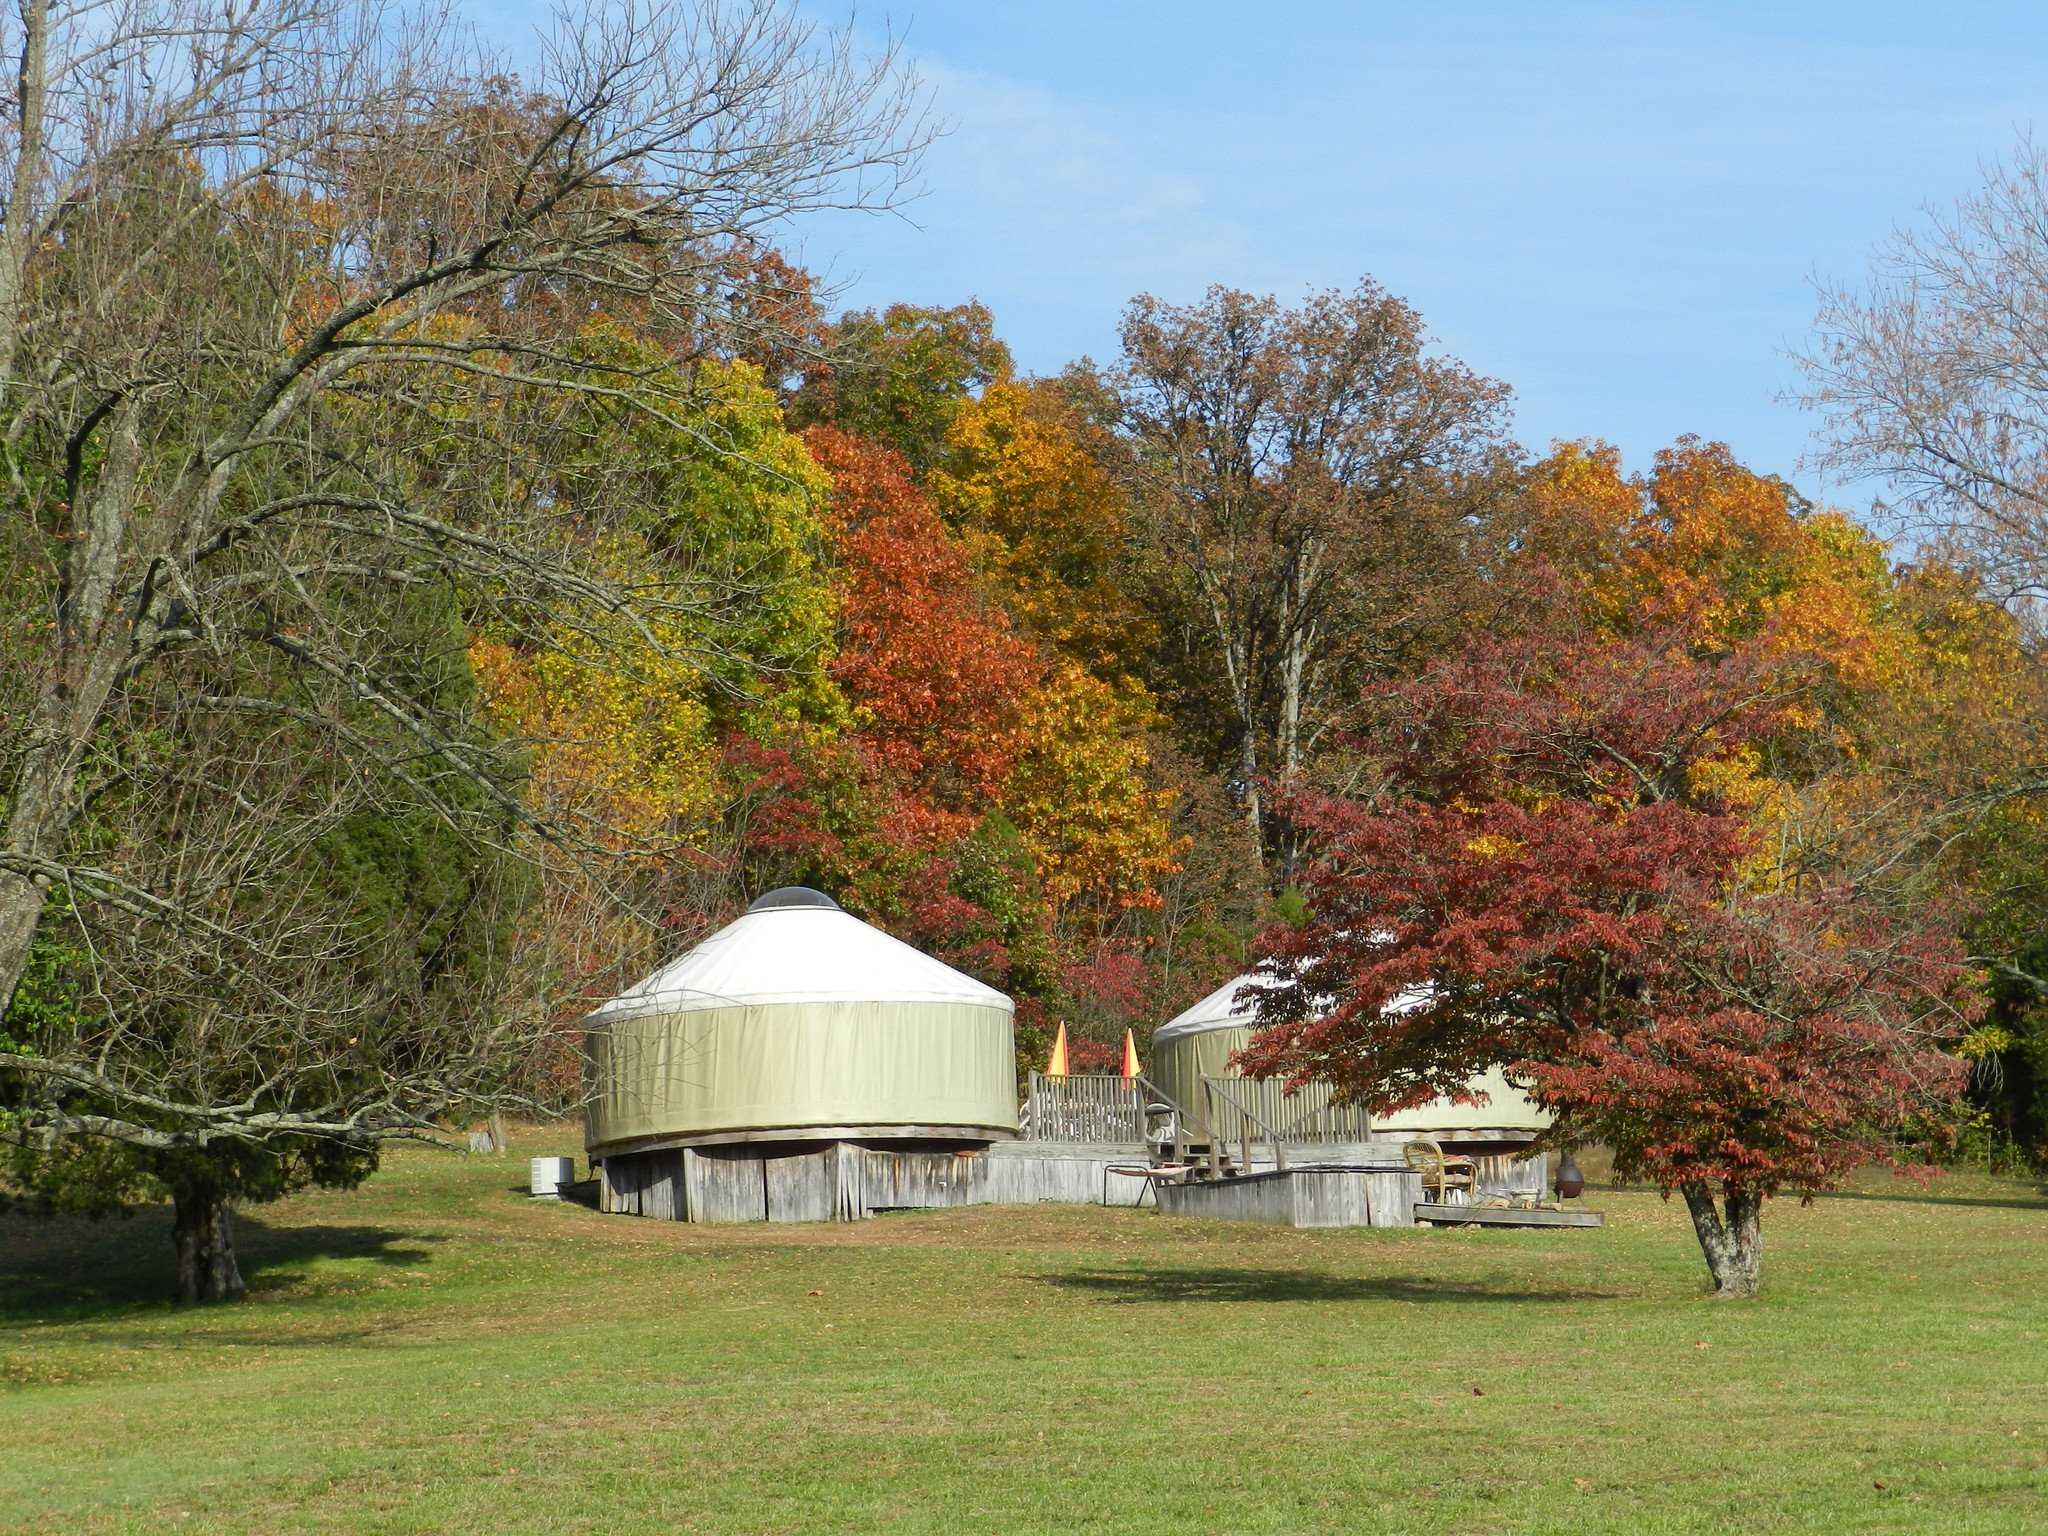 Glamping in Indiana at Mary Rose Herb Farm